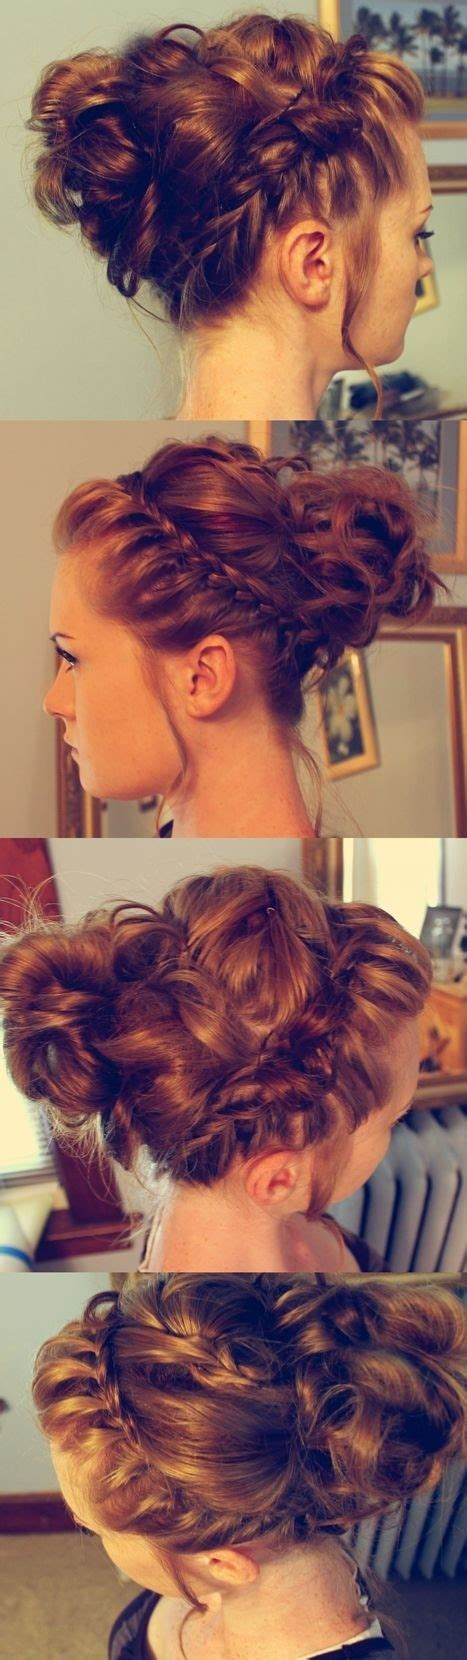 8 Chic Braided Updos: Updo Hairstyles Ideas   PoPular Haircuts